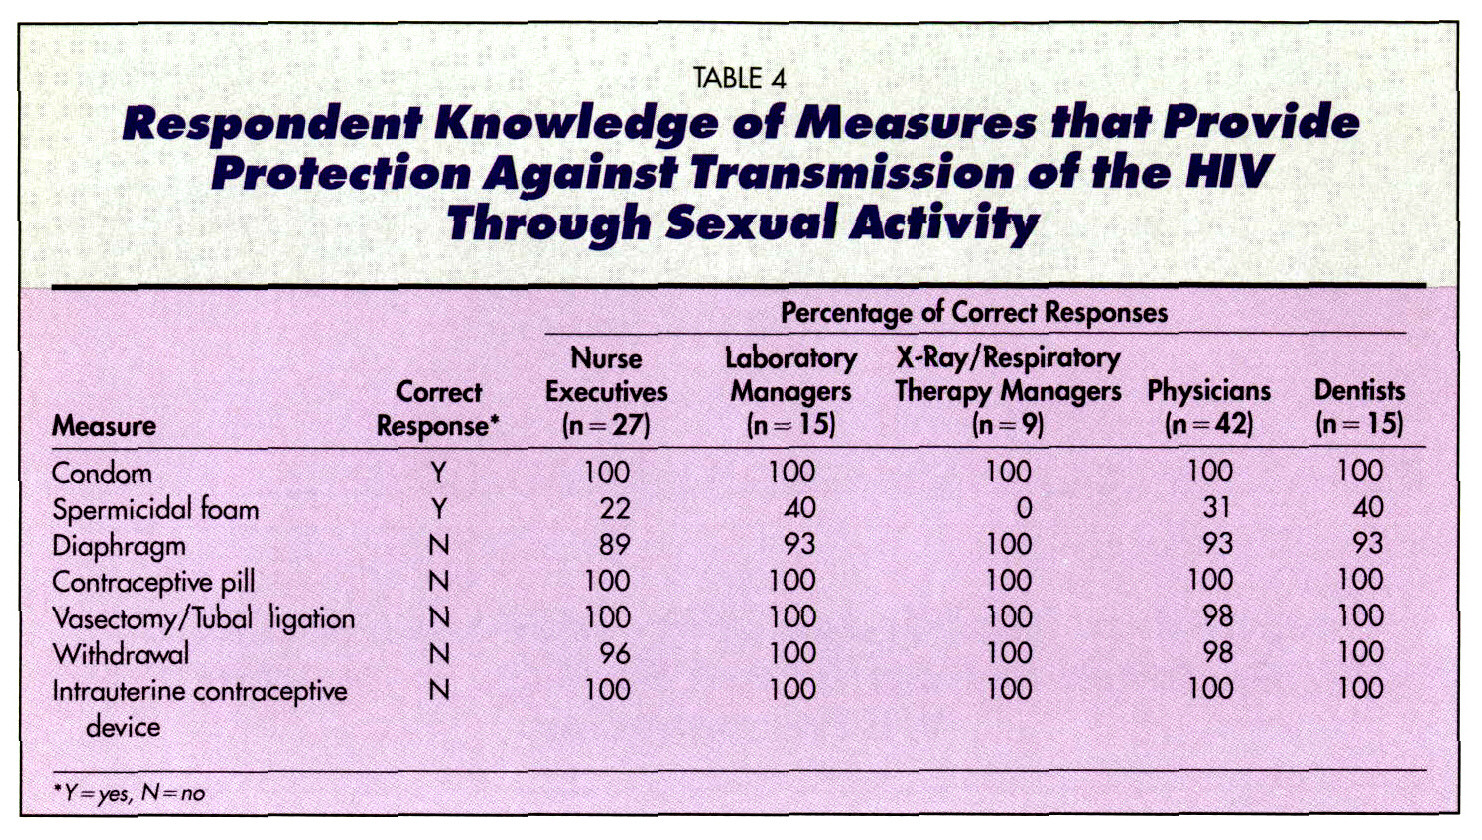 TABLE 4Respondent Knowledge of Measures that Provide Protection Against Transmission of the HIV Through Sexual Activity